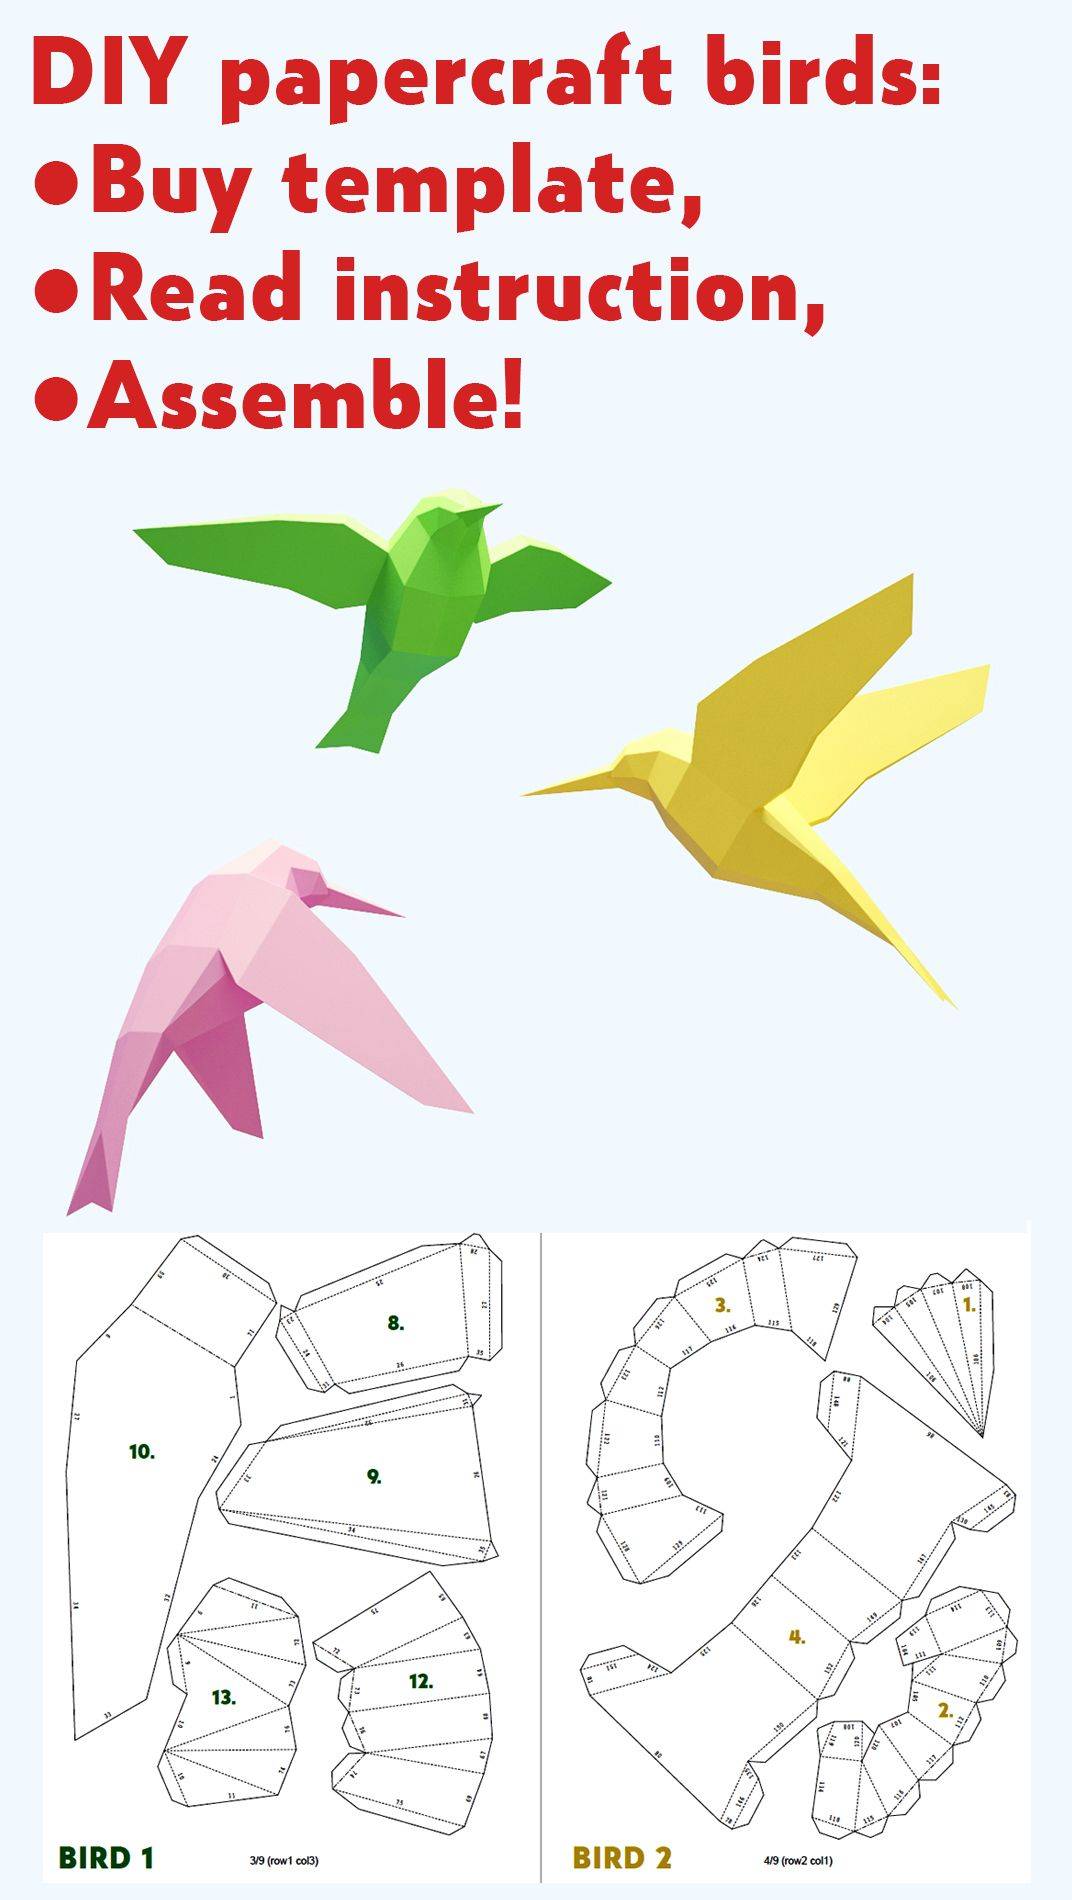 Diy Papercraft Birds Paper Craft Sculpture Pdf Template Simple Model